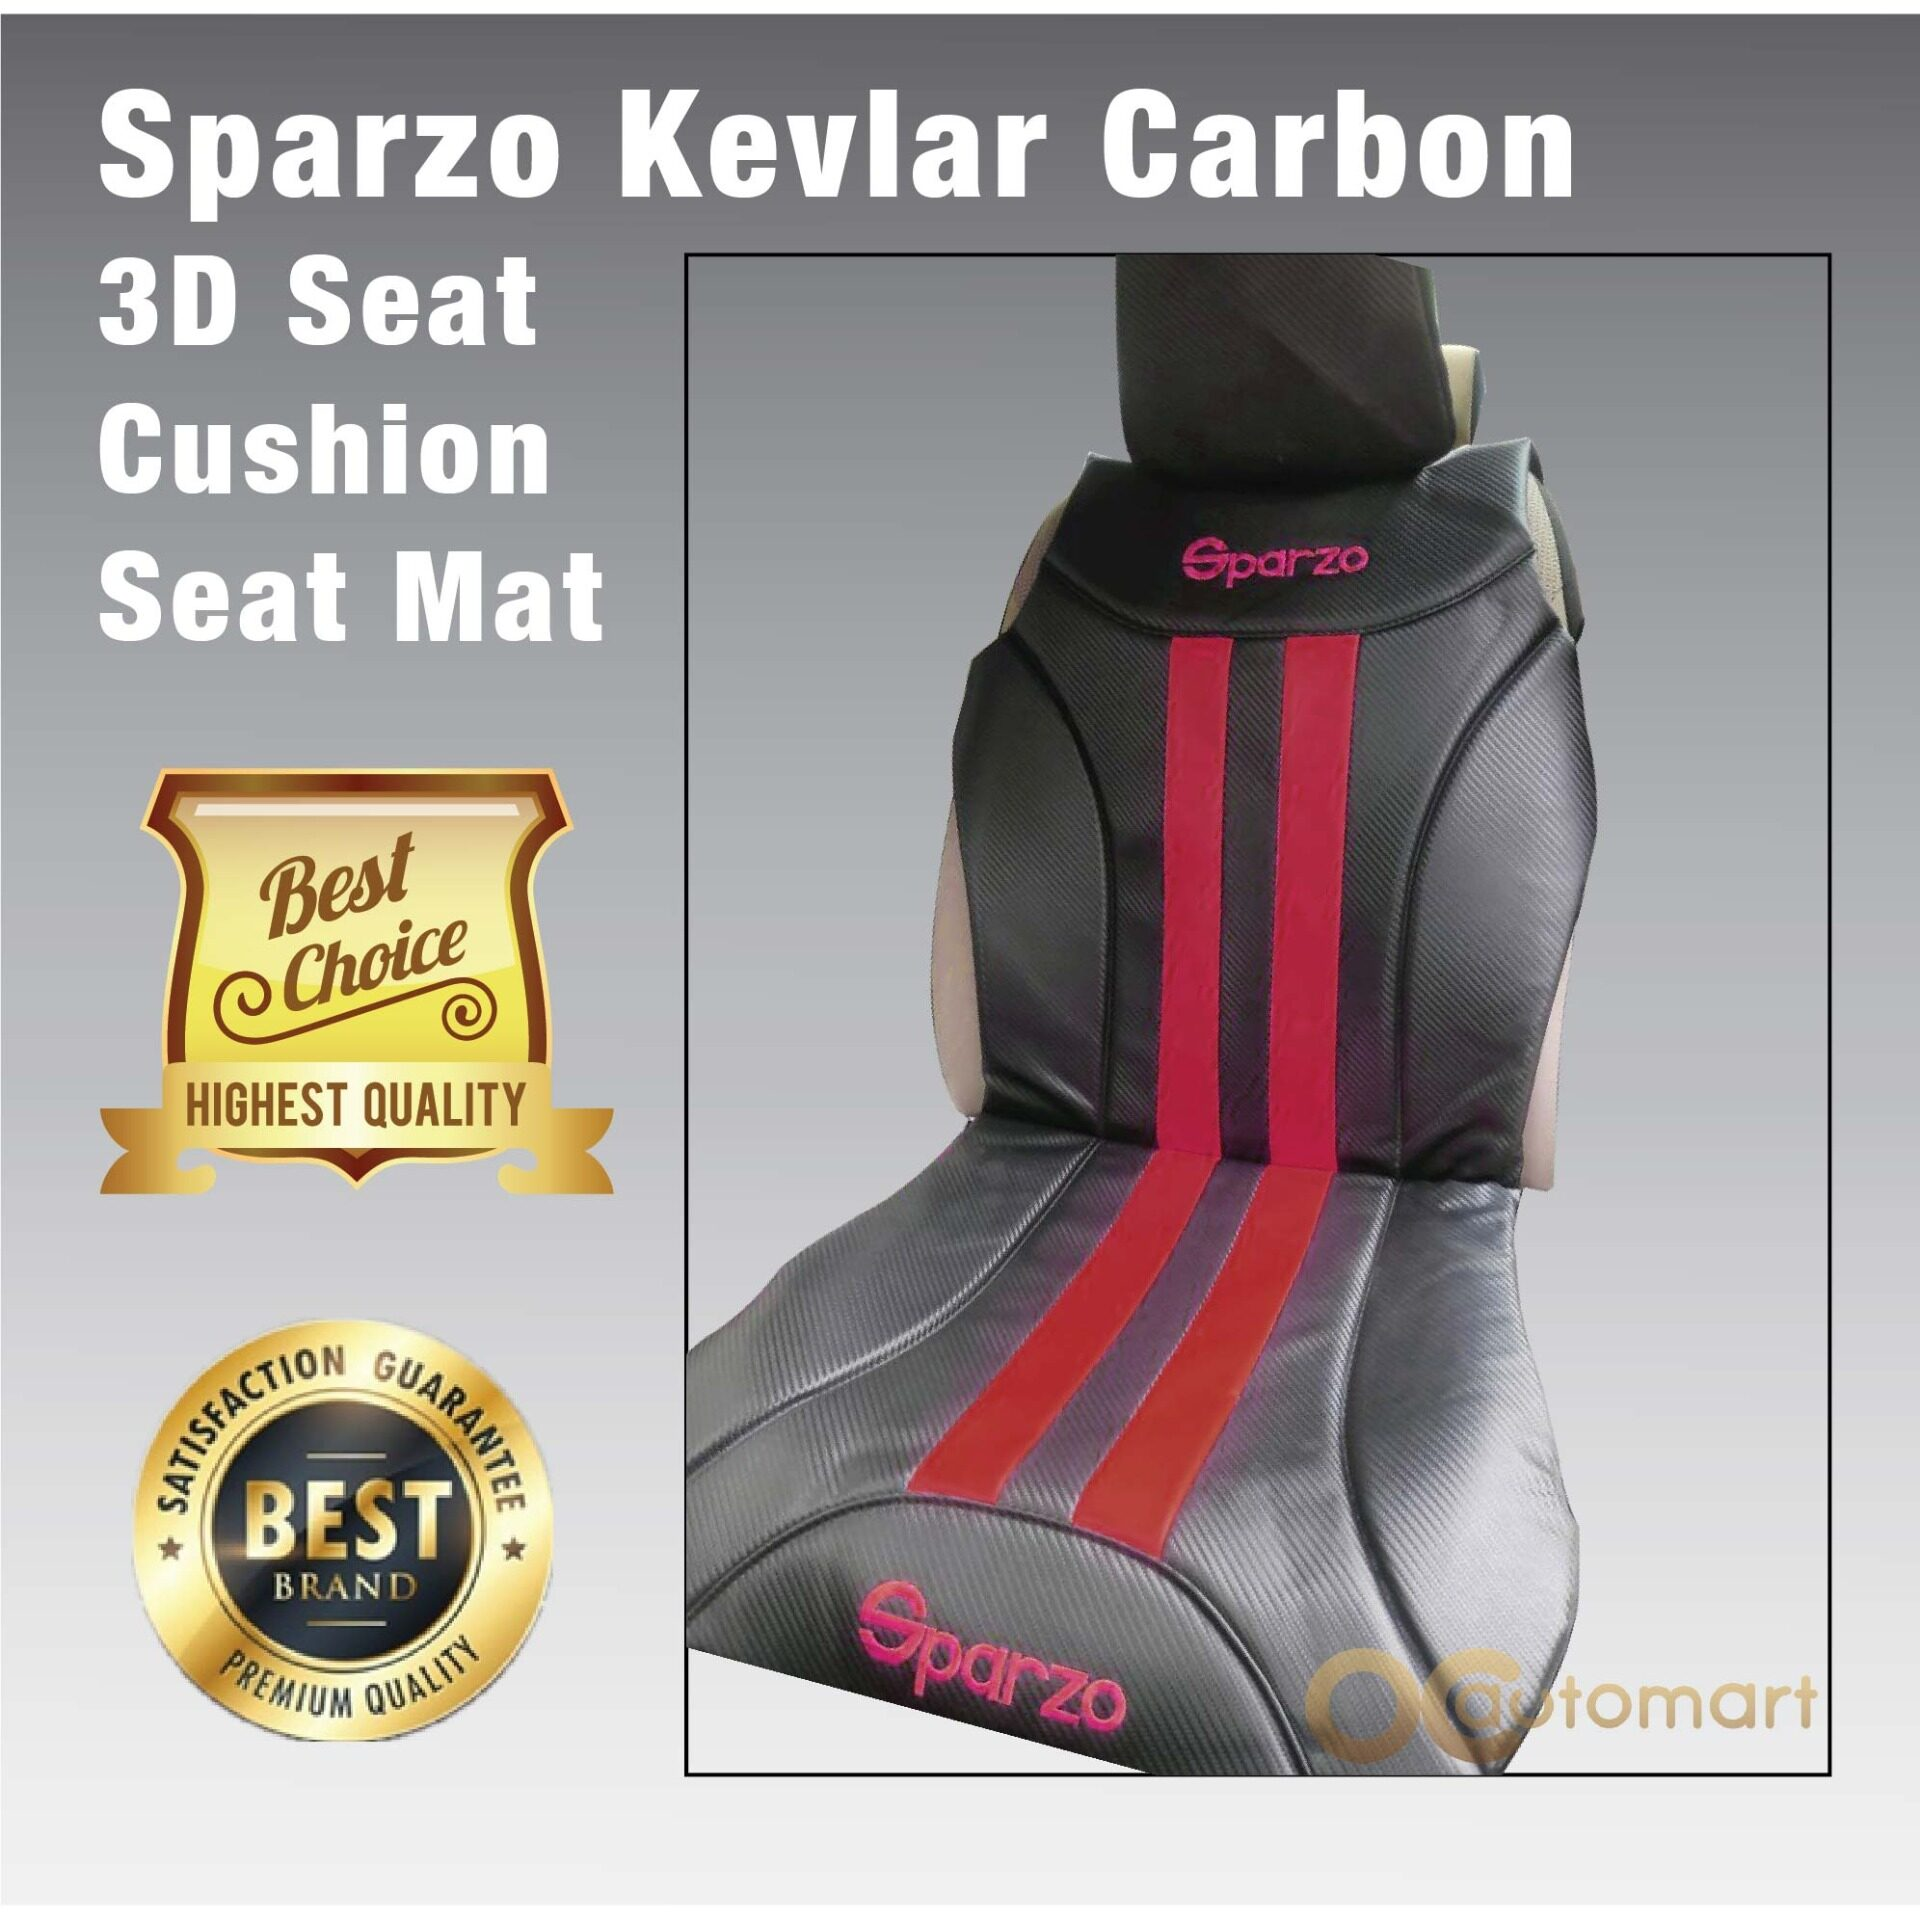 SPARZO Kevlar Seat Cushion Seat Mat Carbon Design 1 Pc MADE IN THAILAND (BLACK+RED) For PROTON SATRIA NEO